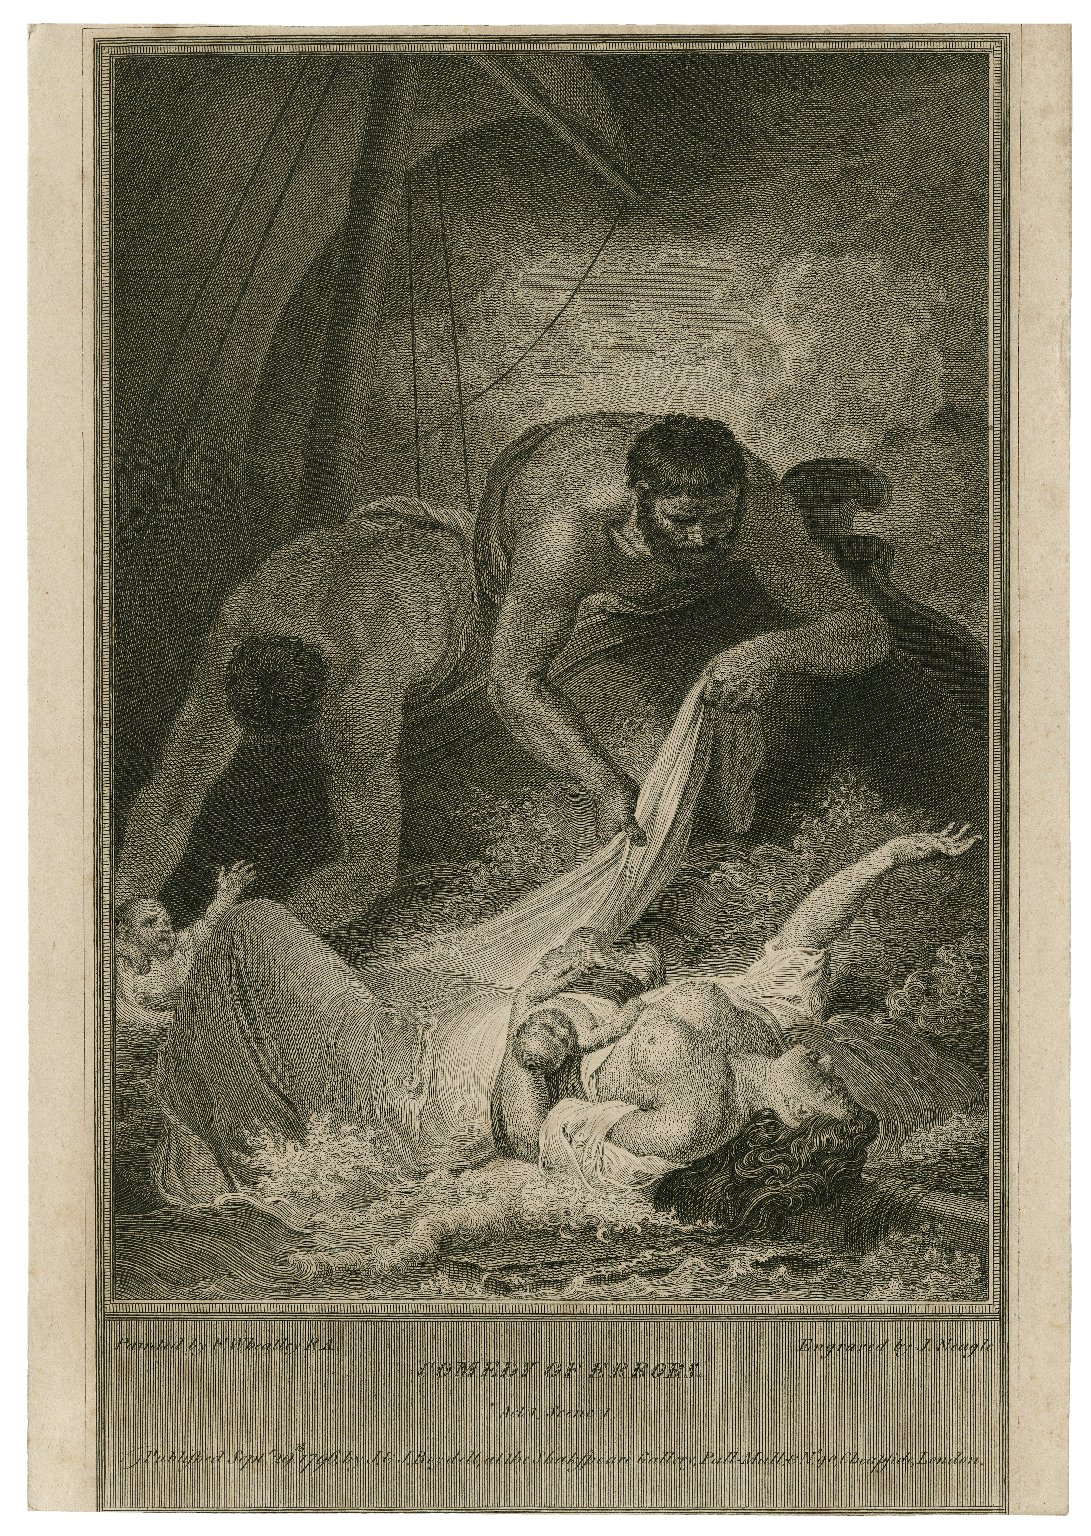 Comedy of errors, act 1, scene 1 [graphic] / painted by F. Wheatley ; engraved by J. Neagle.